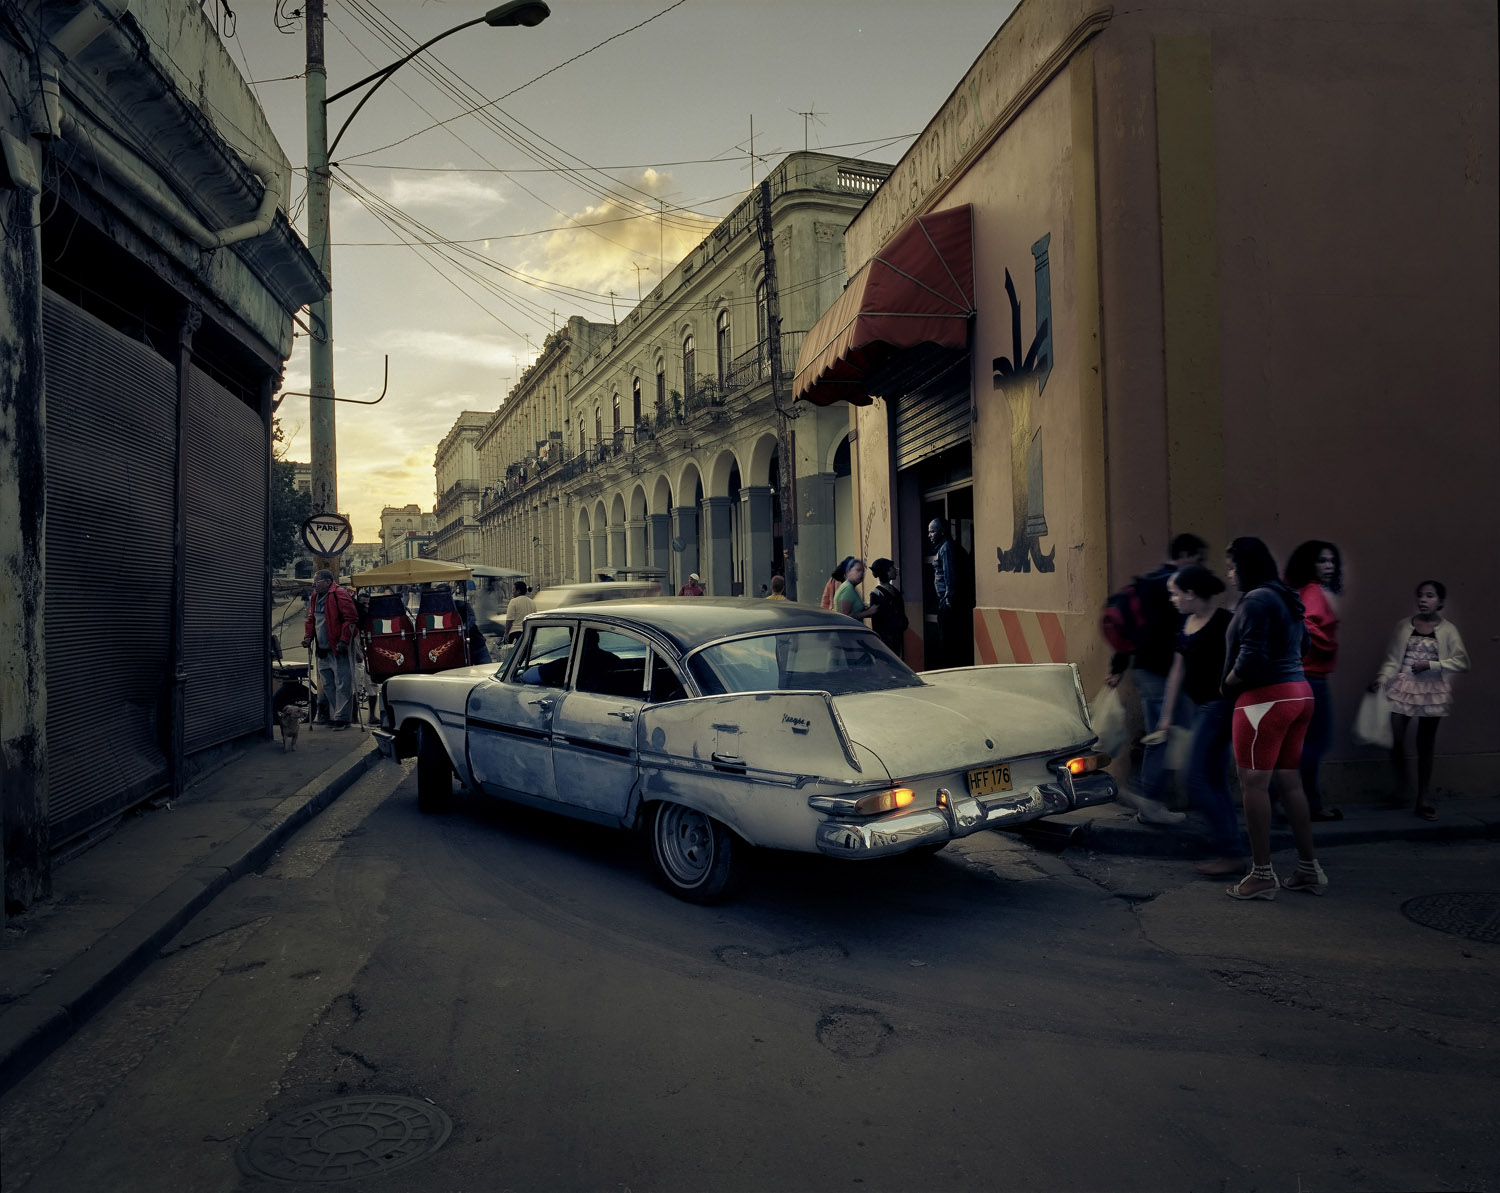 An aging car drives through Old Havana at dusk.